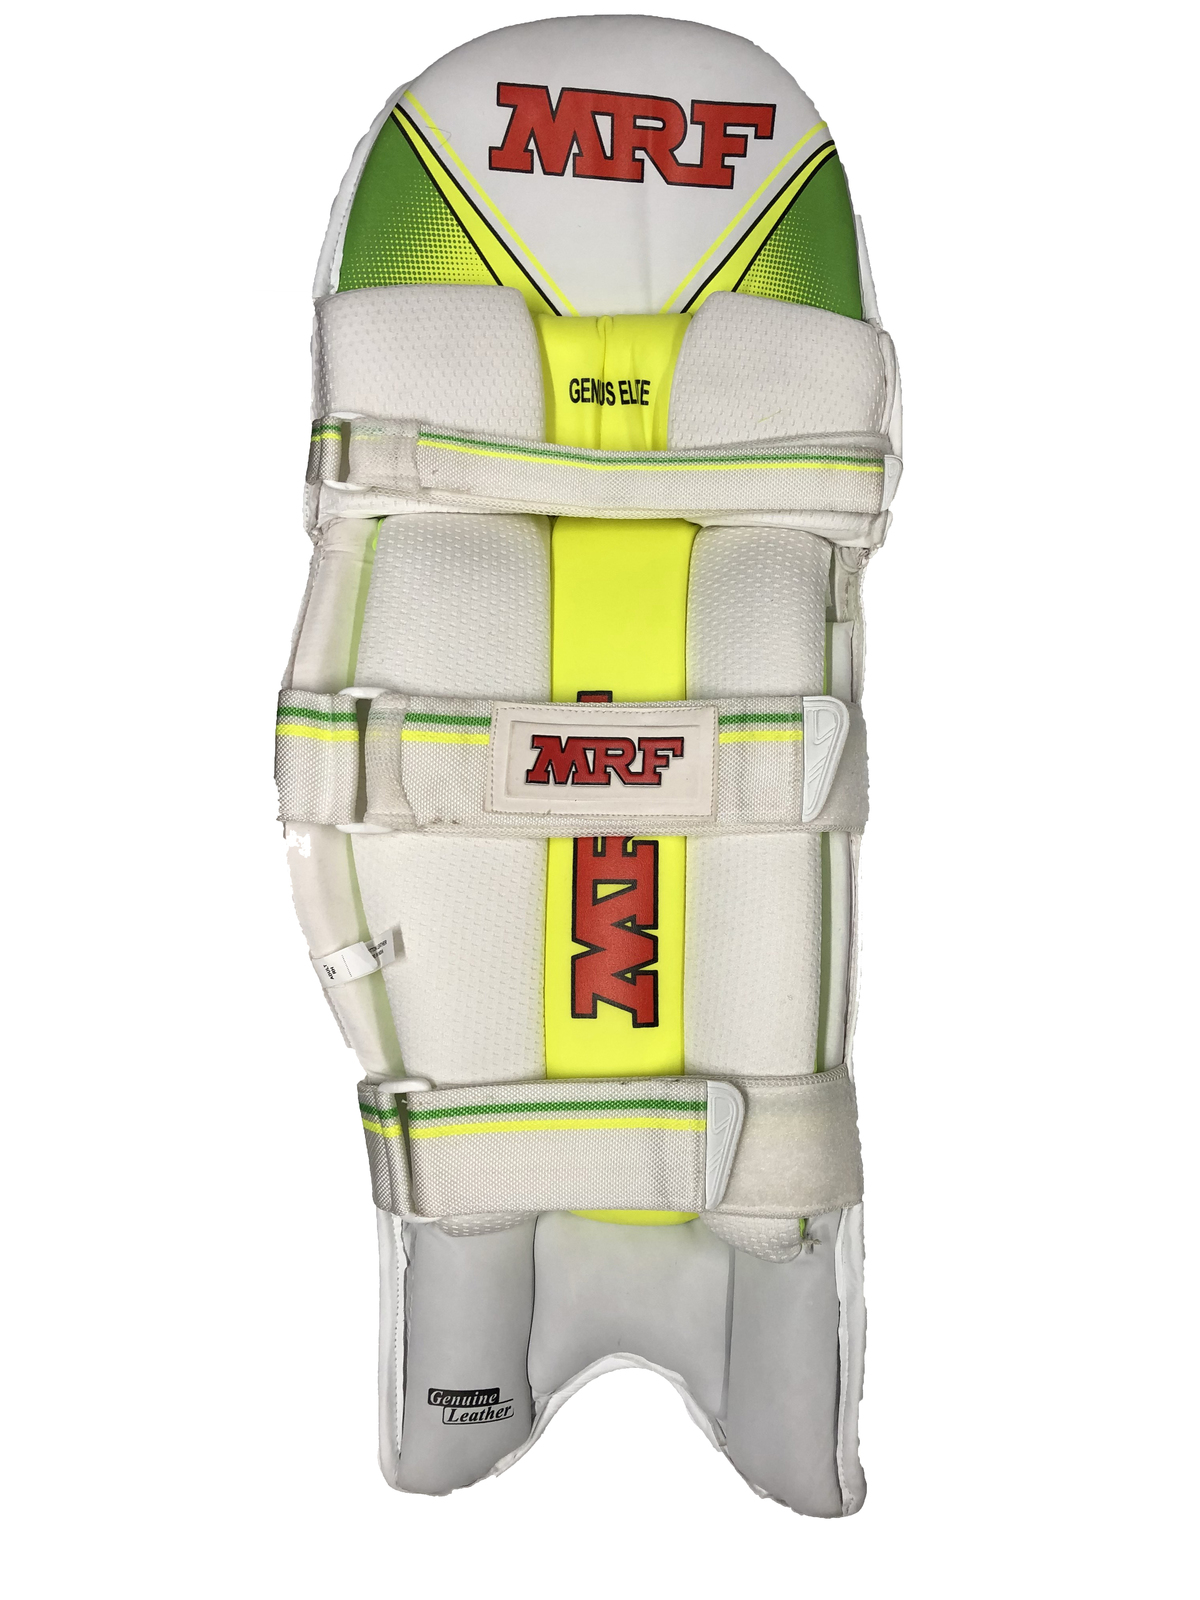 MRF Mens Elite Batting Pads (RH) image